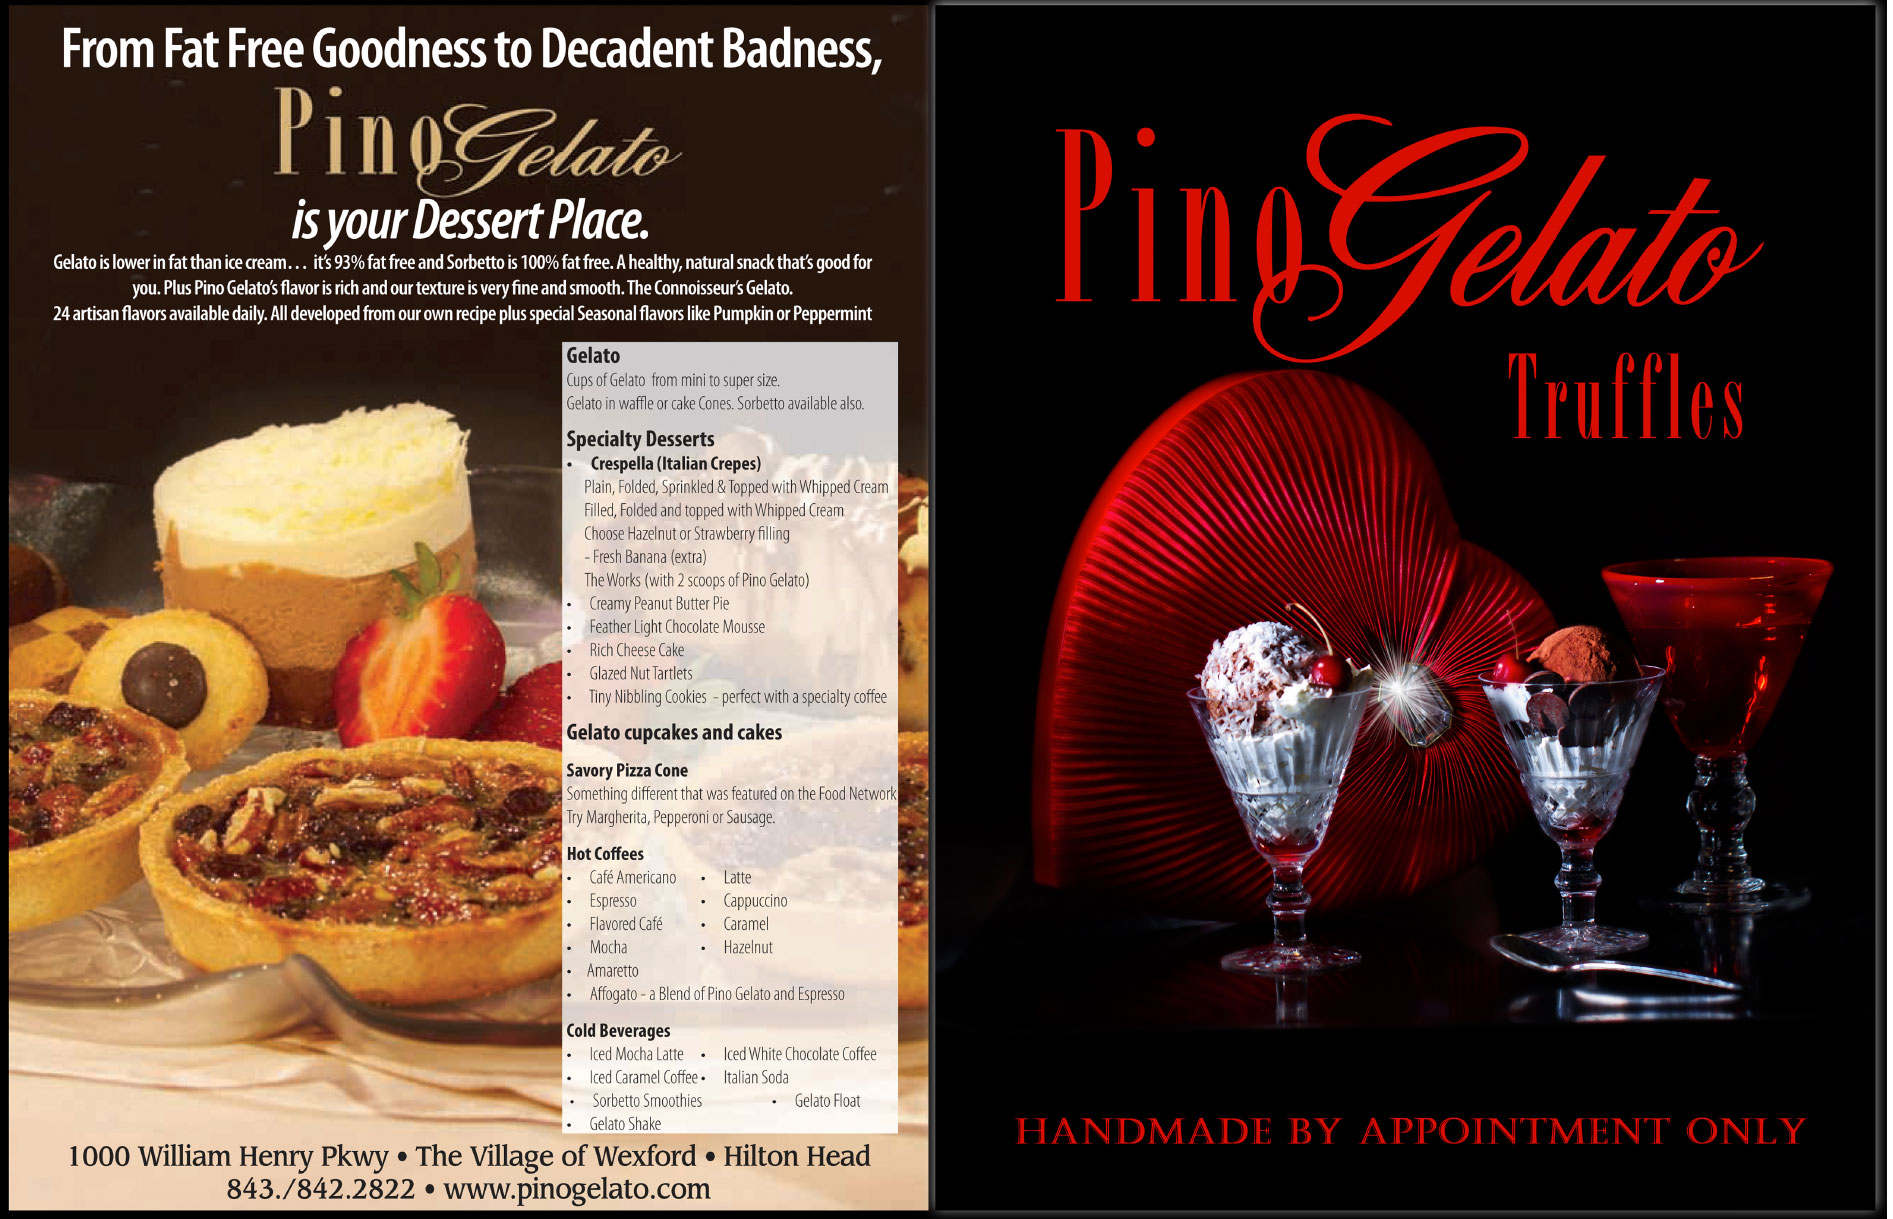 Series of Ads for Pino Gelato